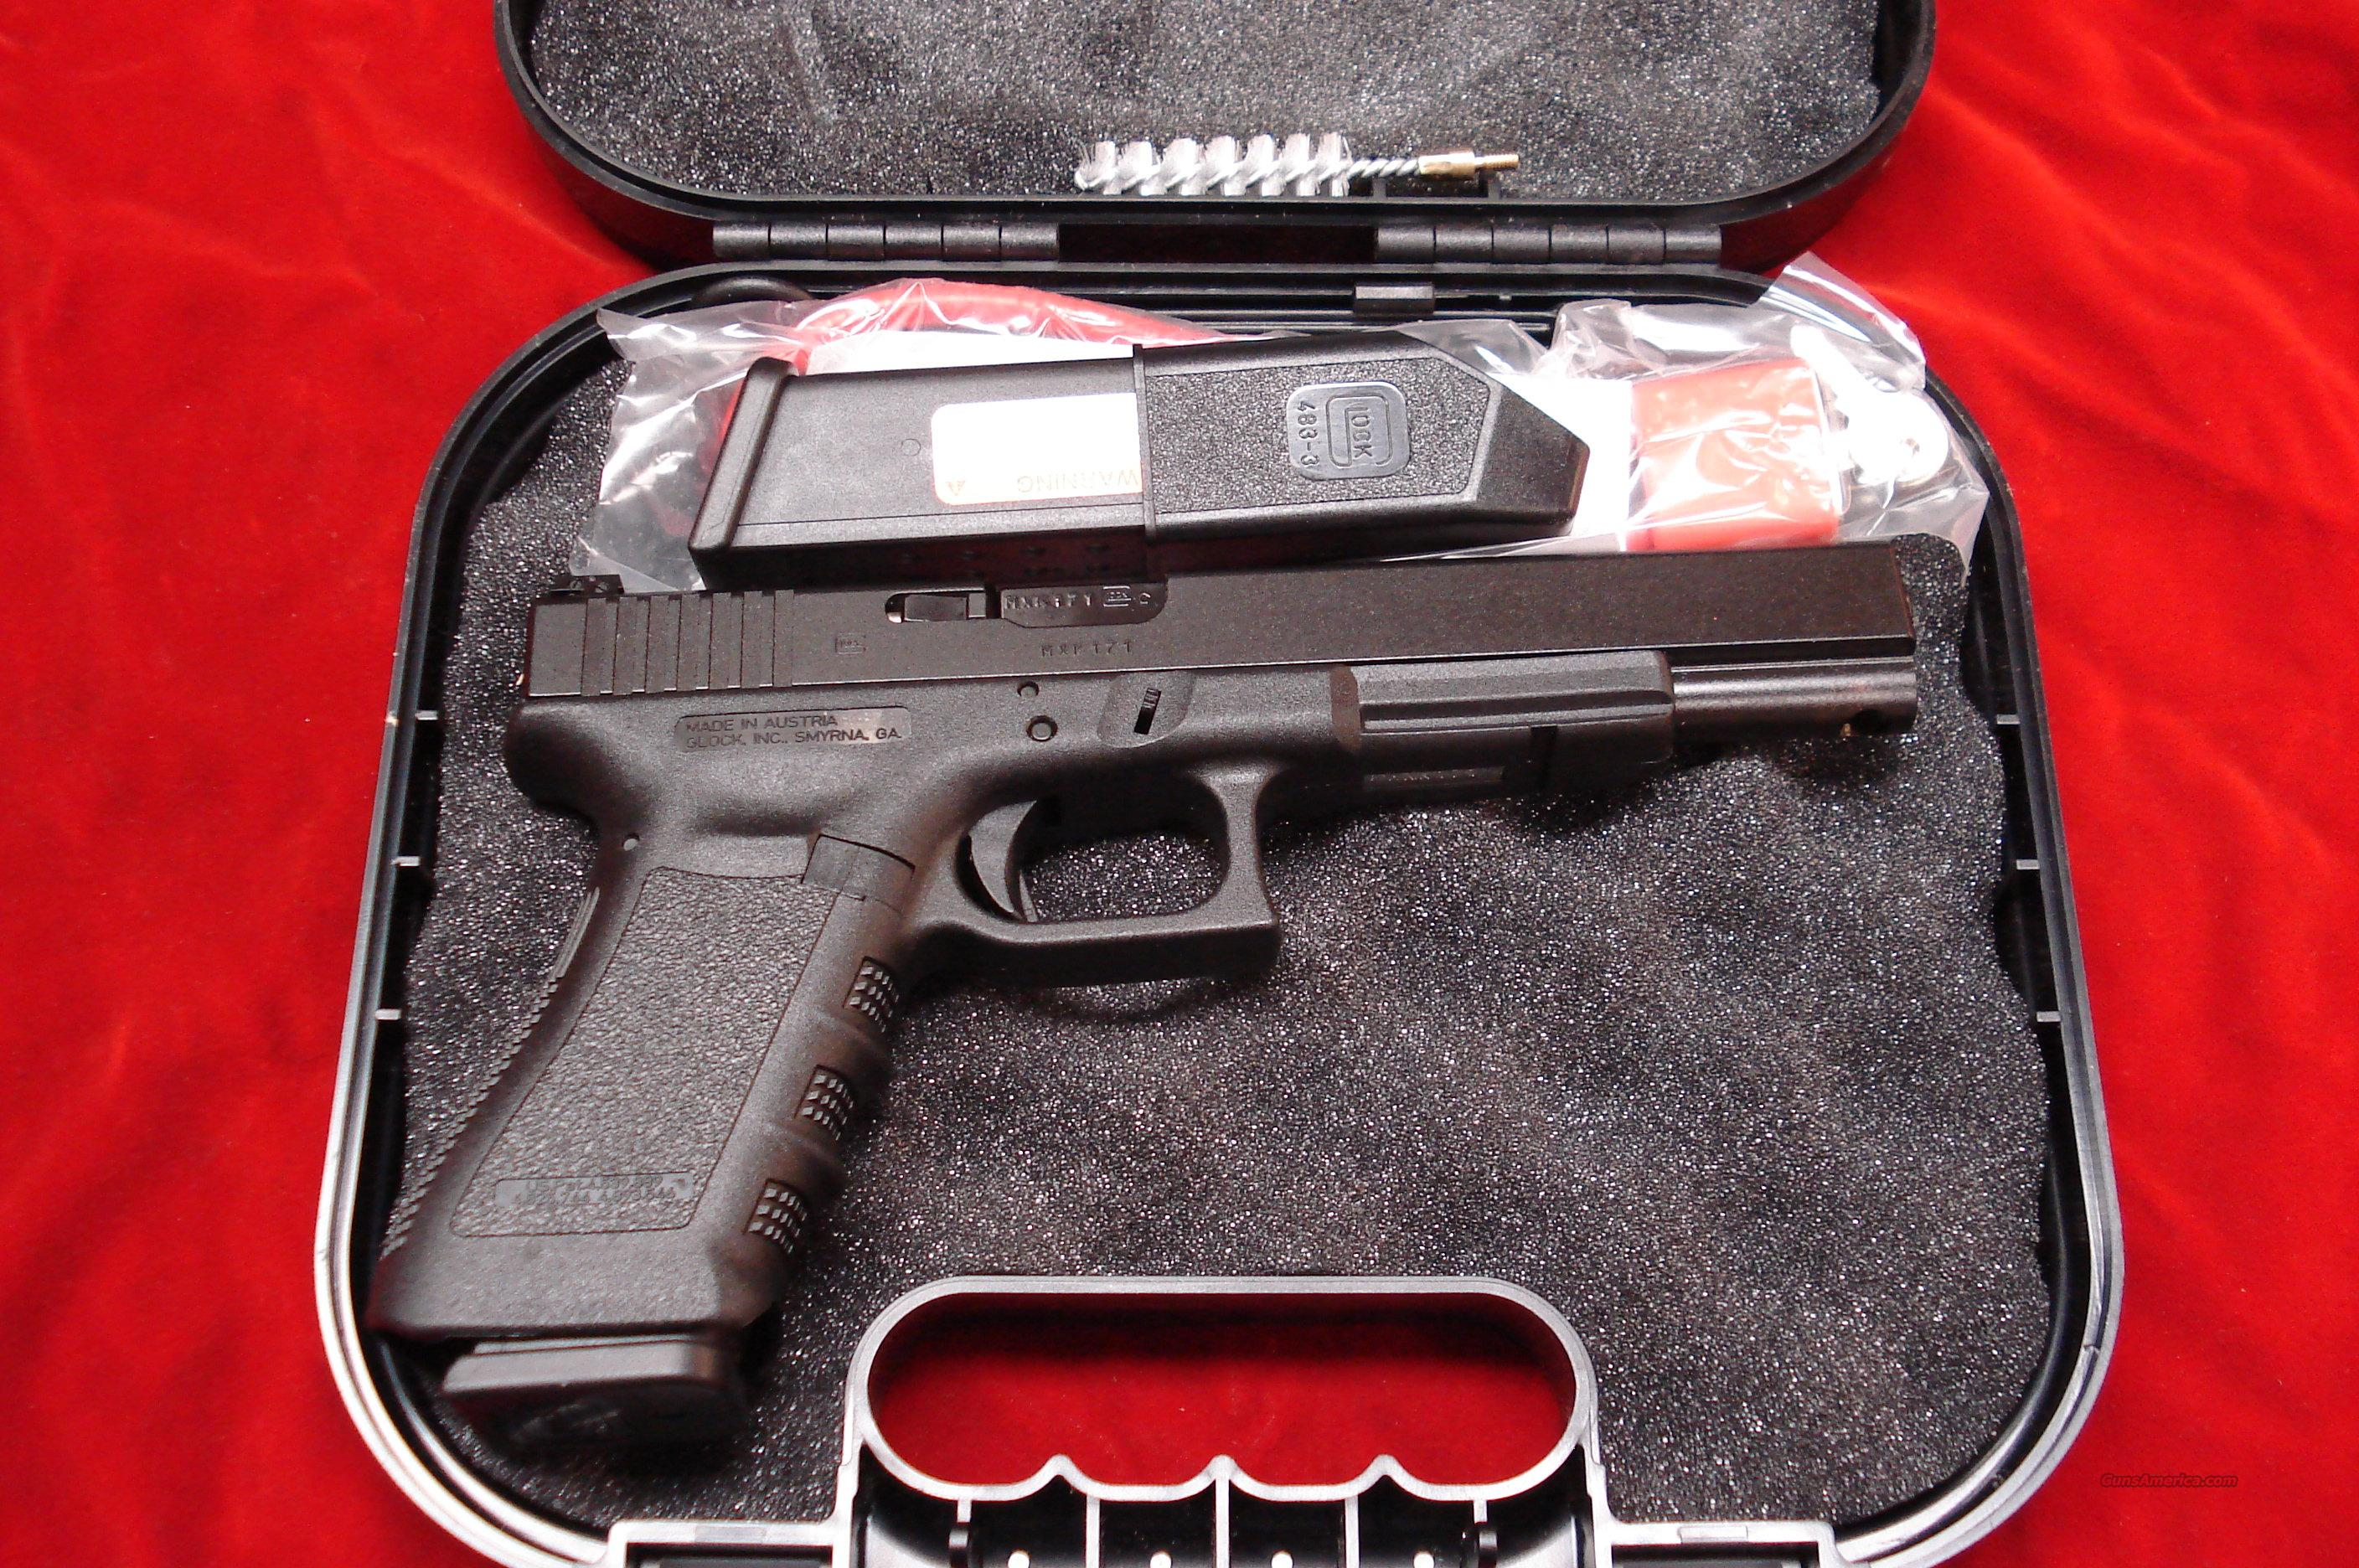 GLOCK 24C (COMPENSATED) .4O CAL. HIGH CAP. NEW IN THE BOX  Guns > Pistols > Glock Pistols > 24